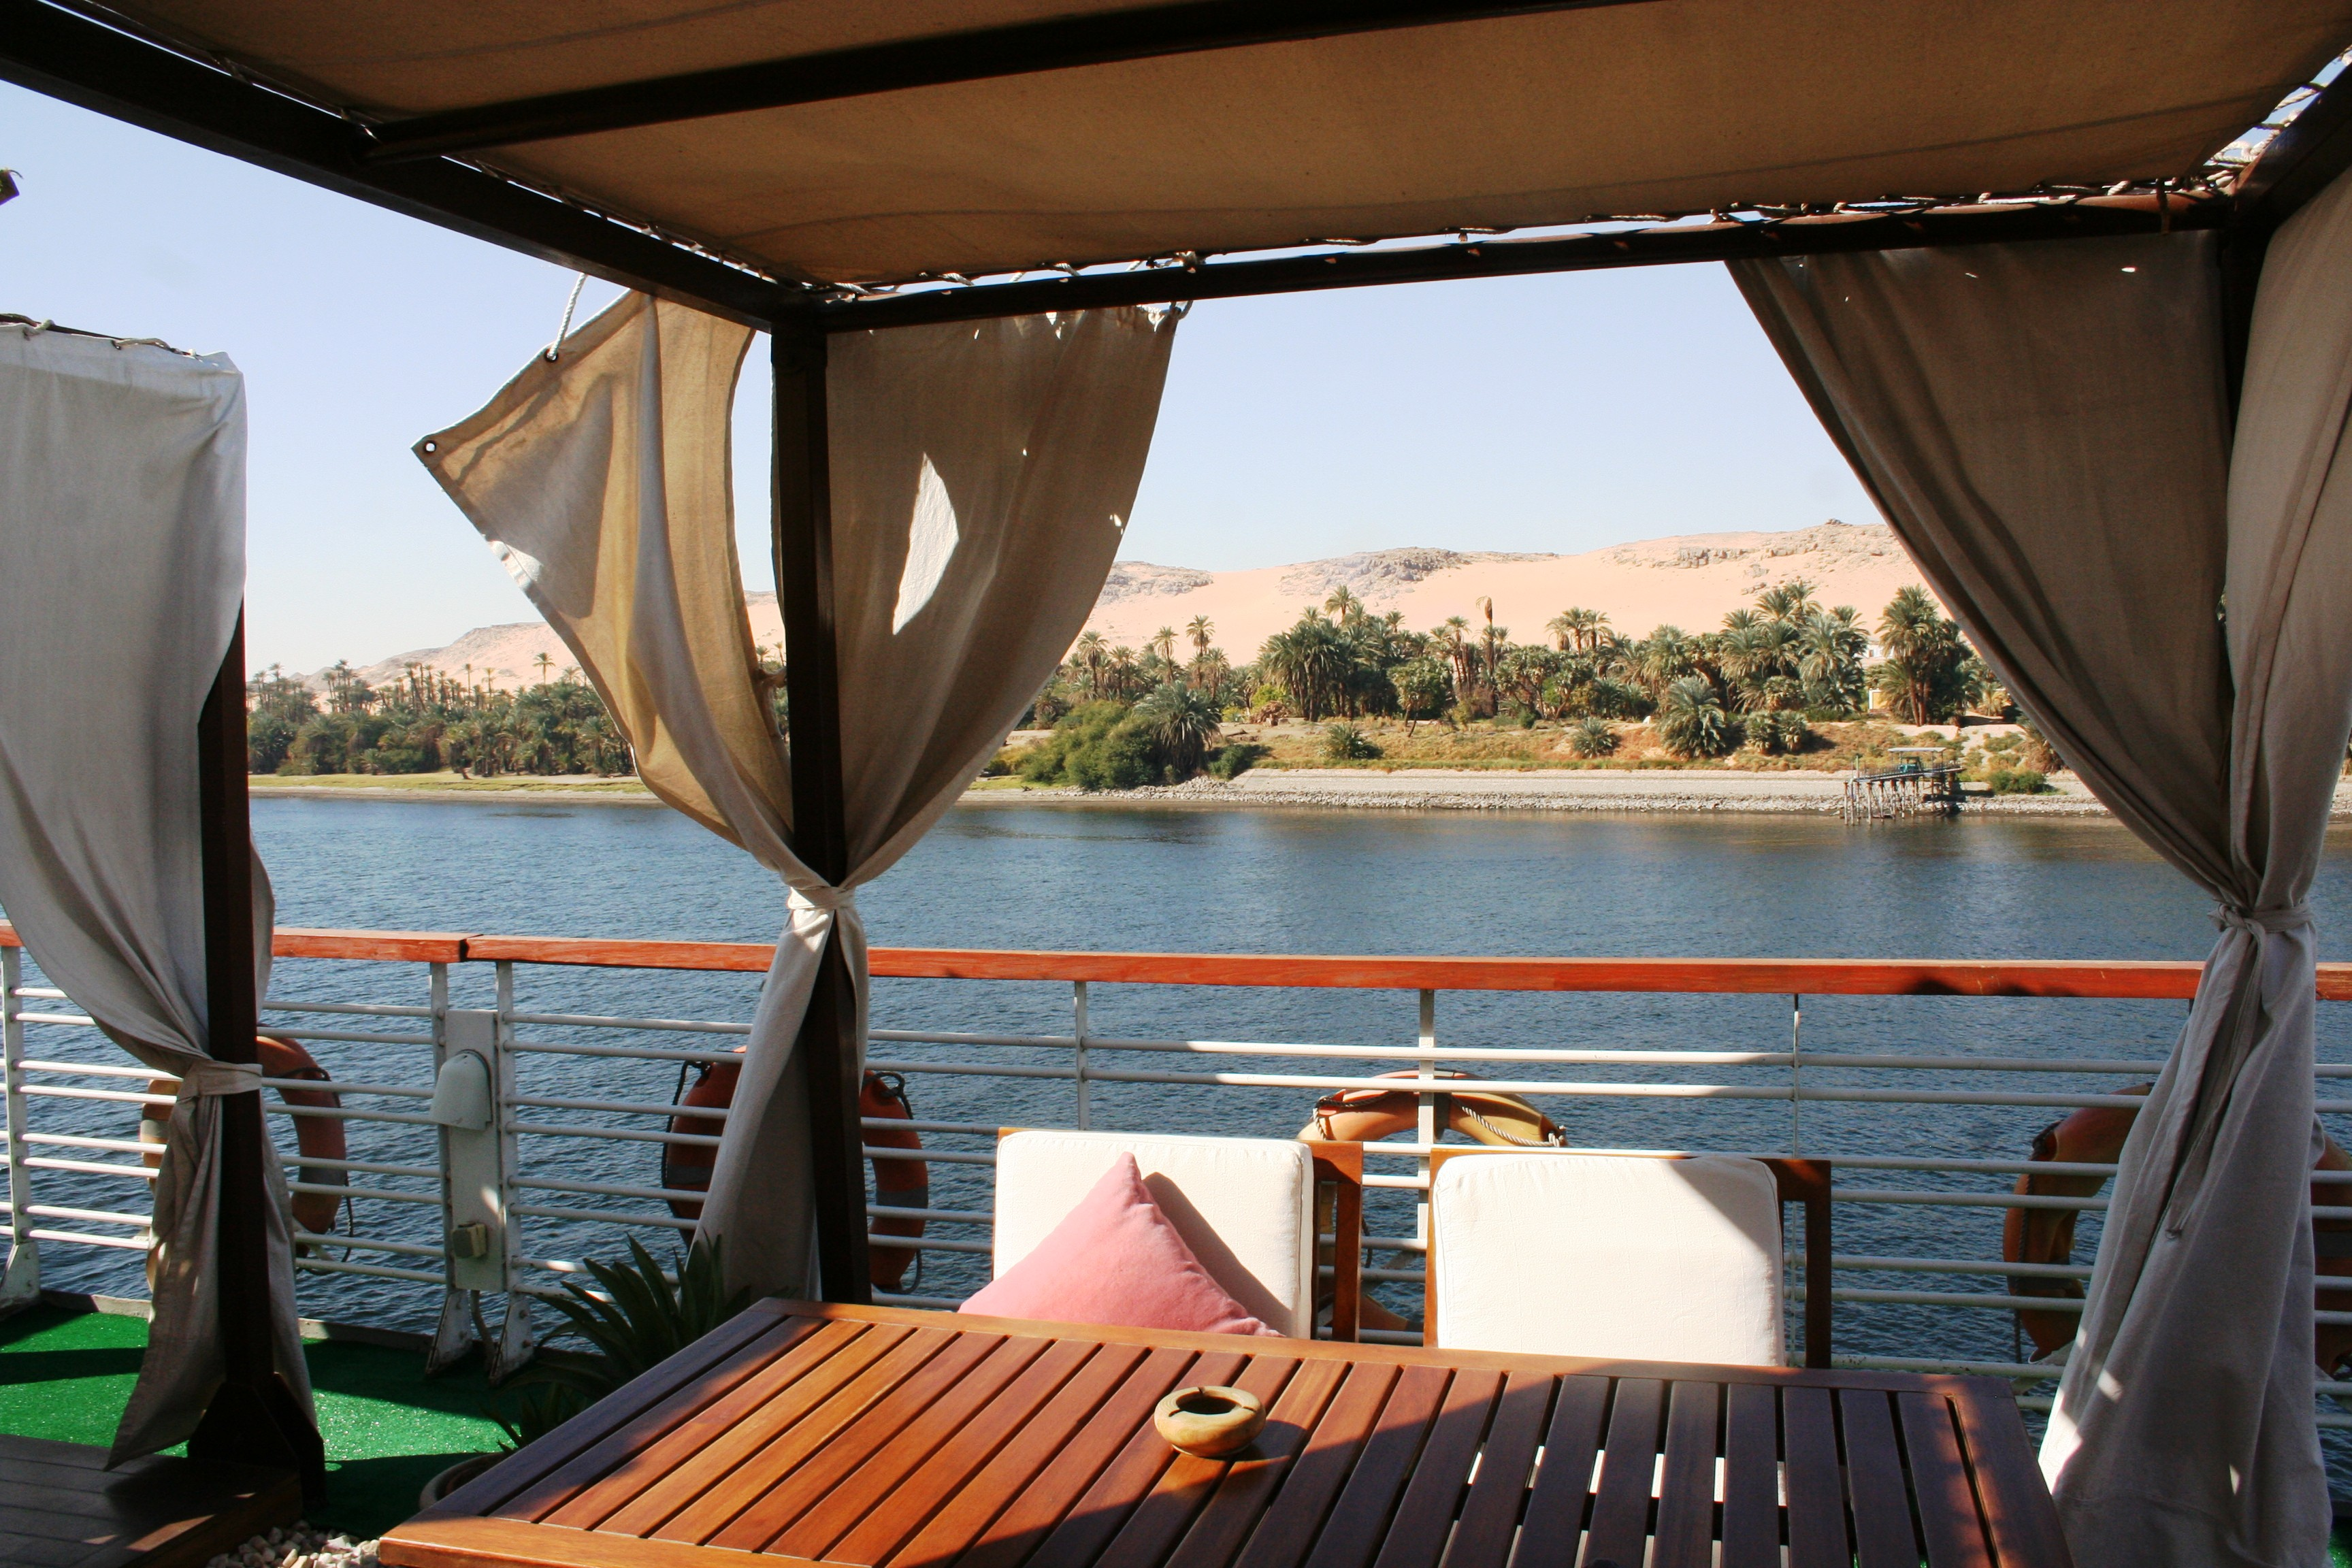 Cruising the Nile